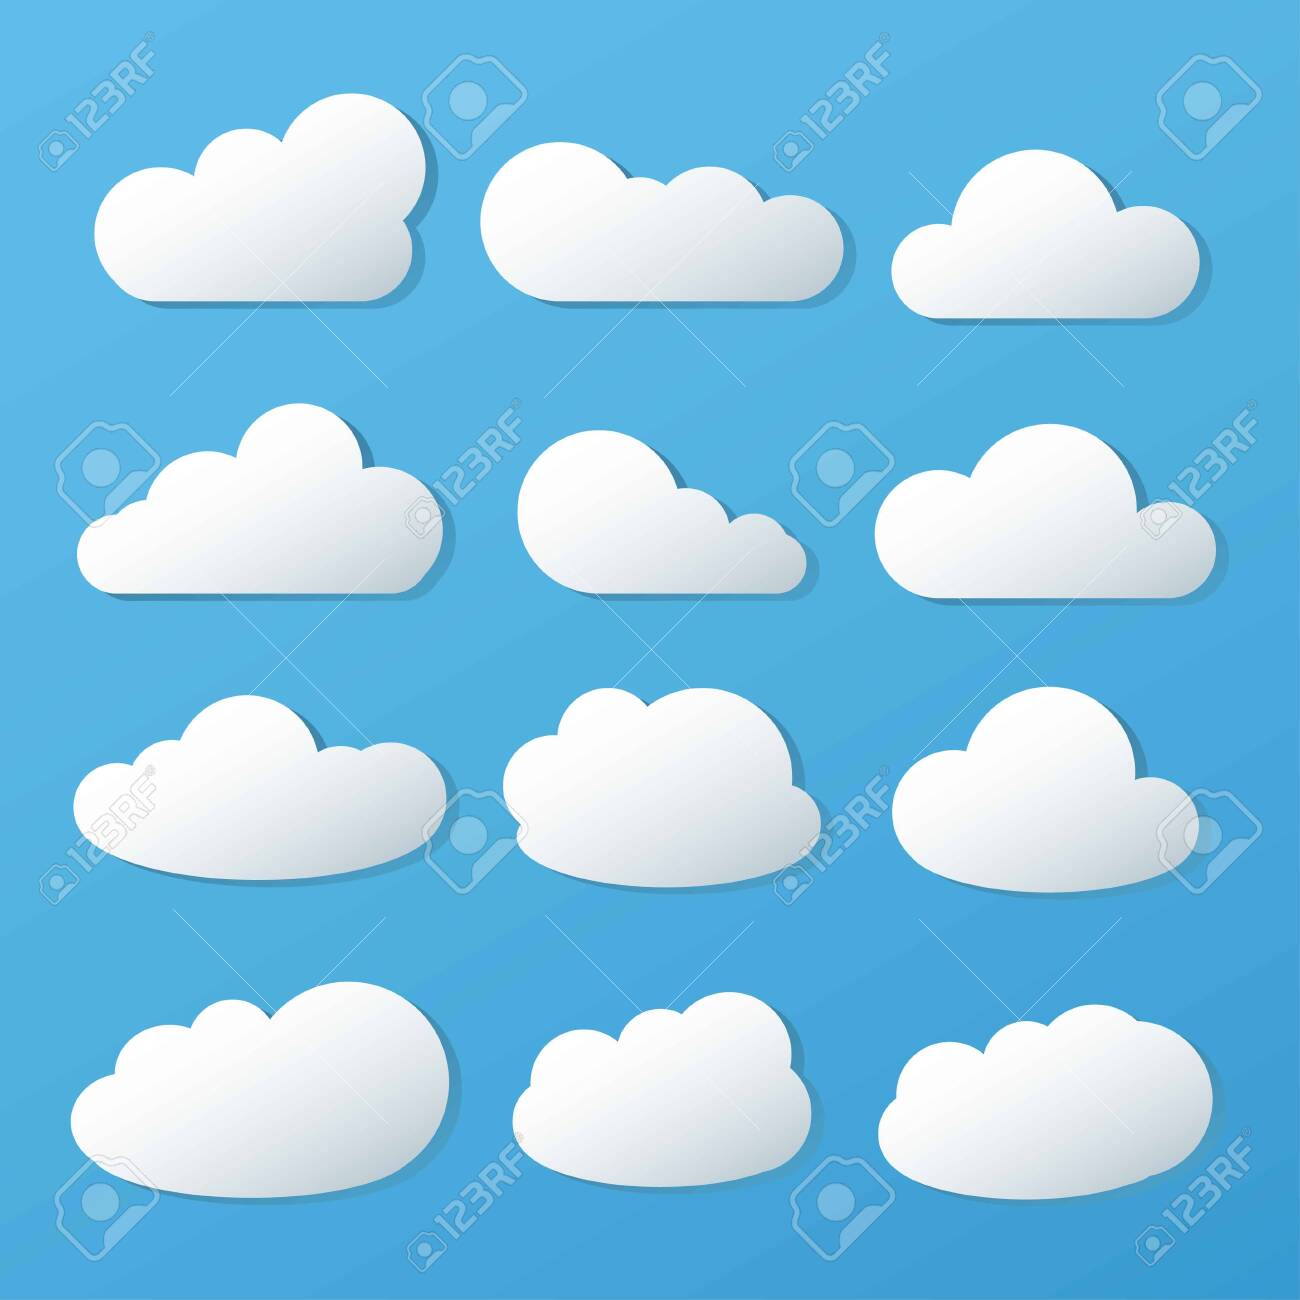 Clouds icon, vector illustration on blue background. - 145366479